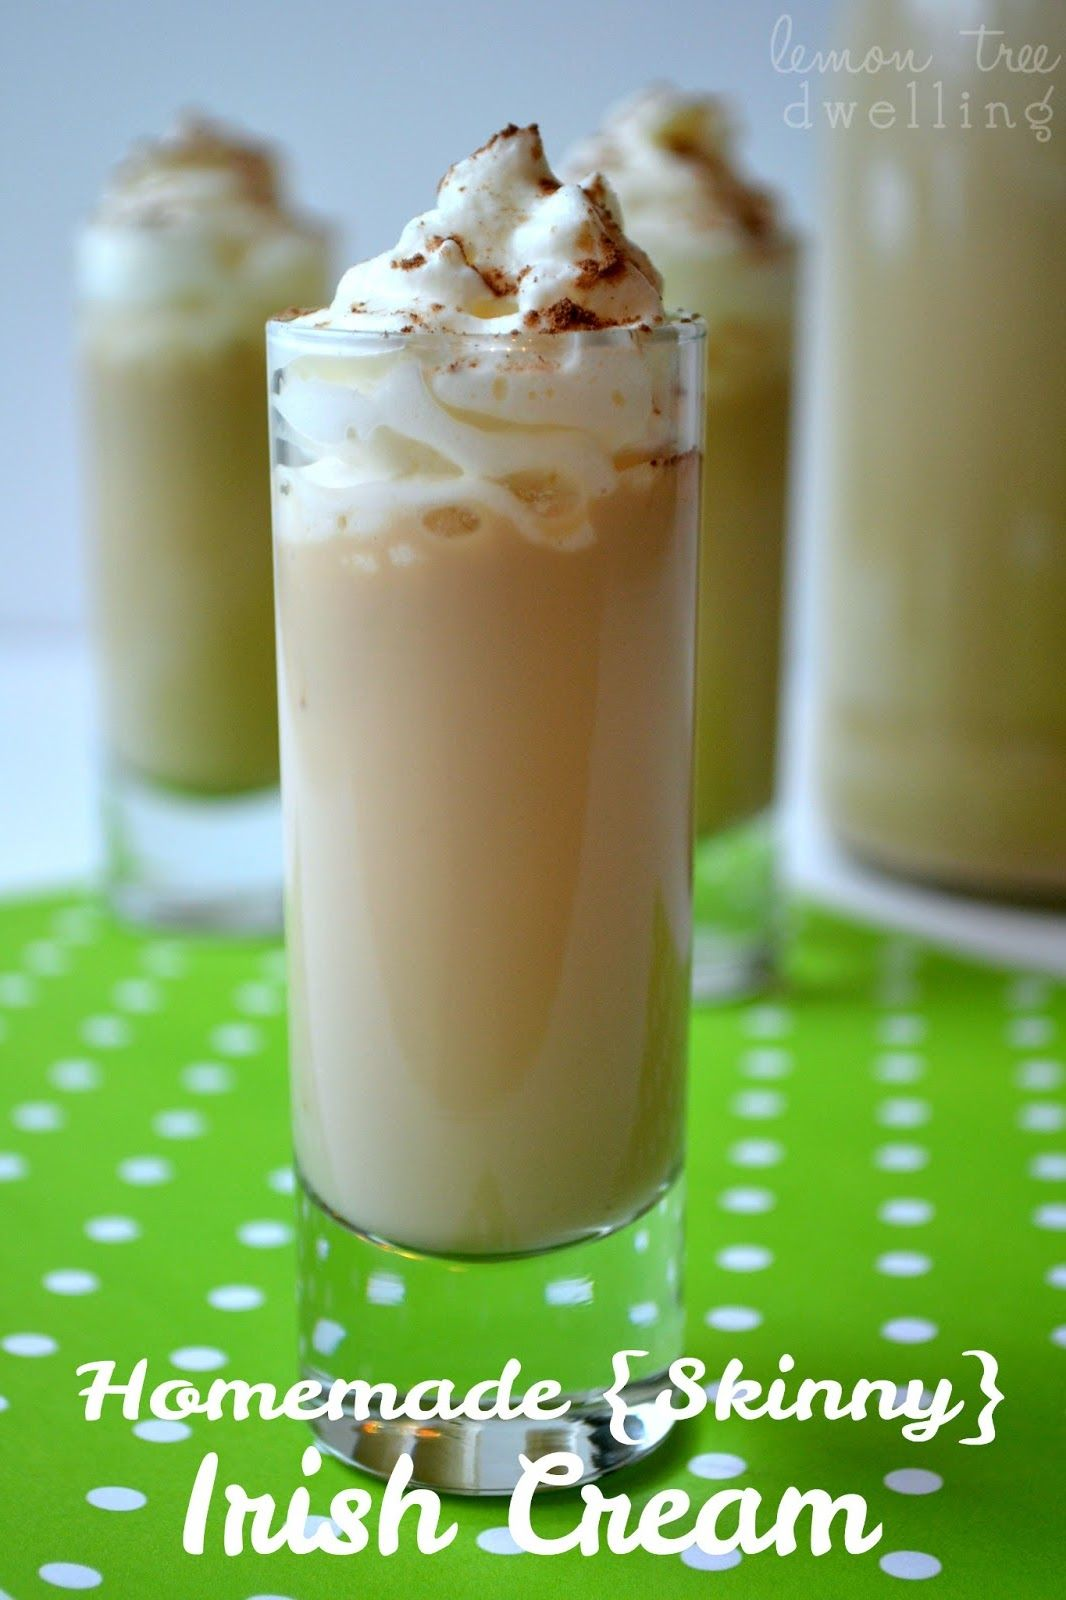 Skinny {Baileys} Irish Cream from Lemon Tree Dwelling